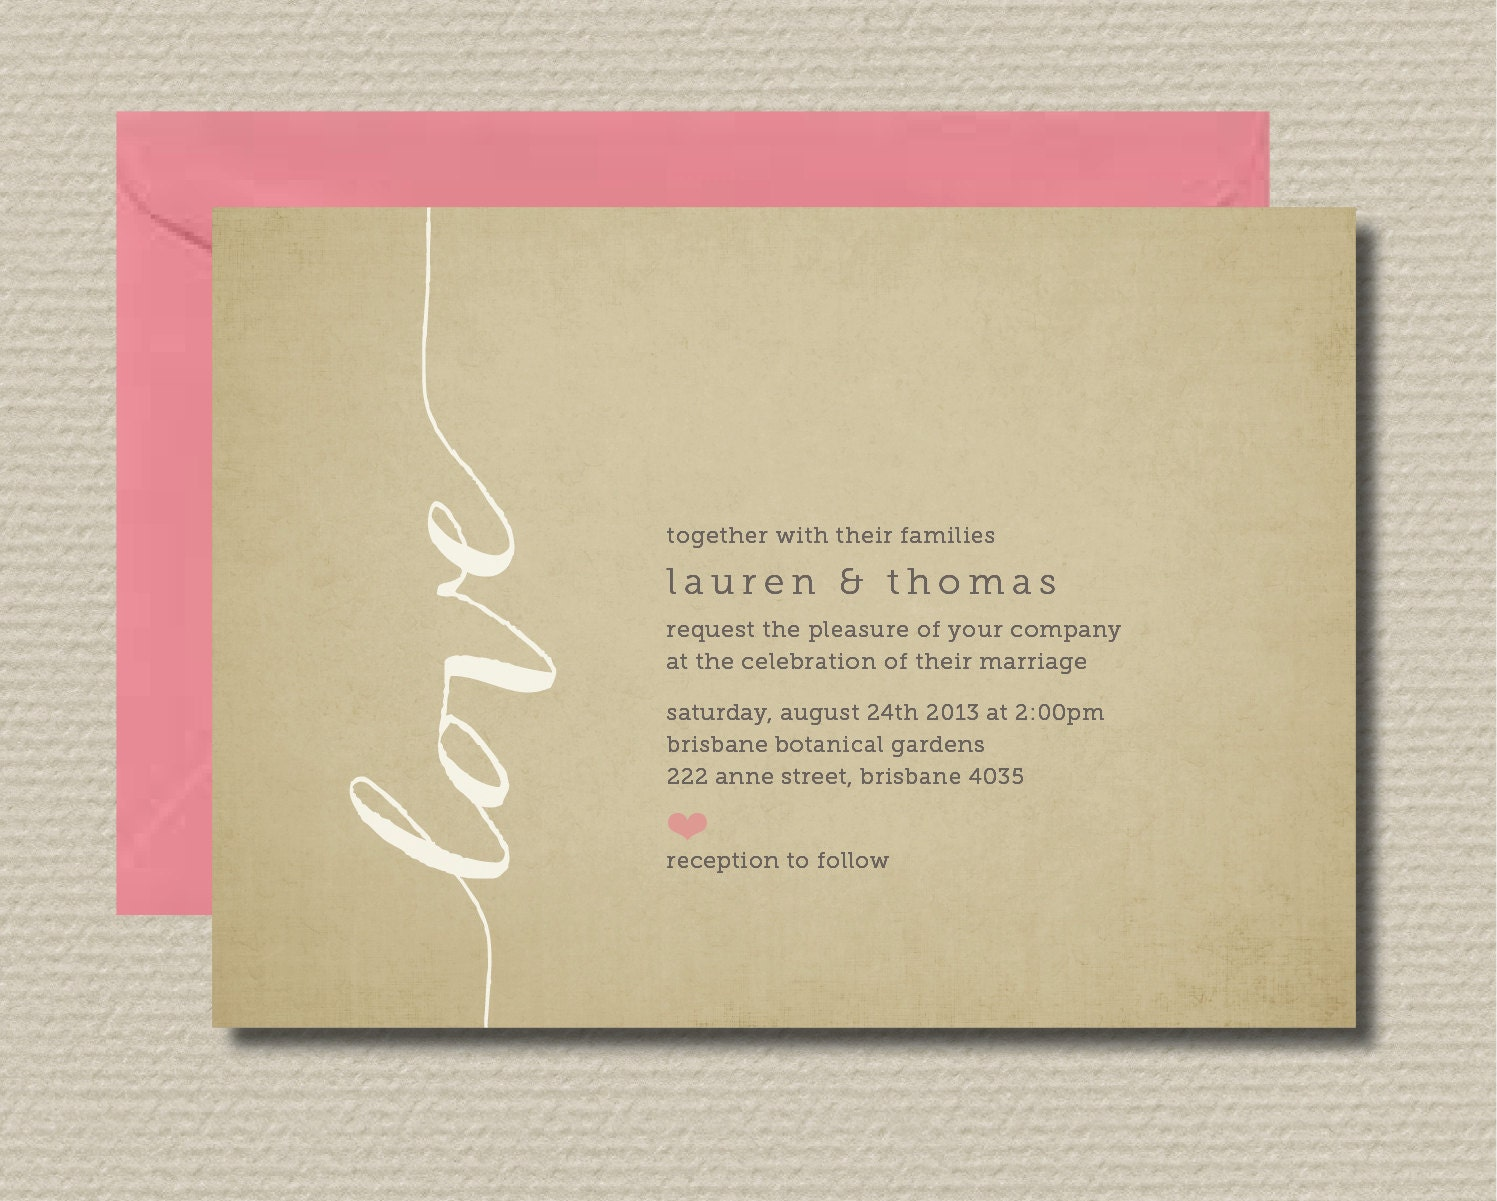 Rsvp To Wedding Invitation Wording: Printable Wedding Invitation & RSVP Love By Rosiedaydesign